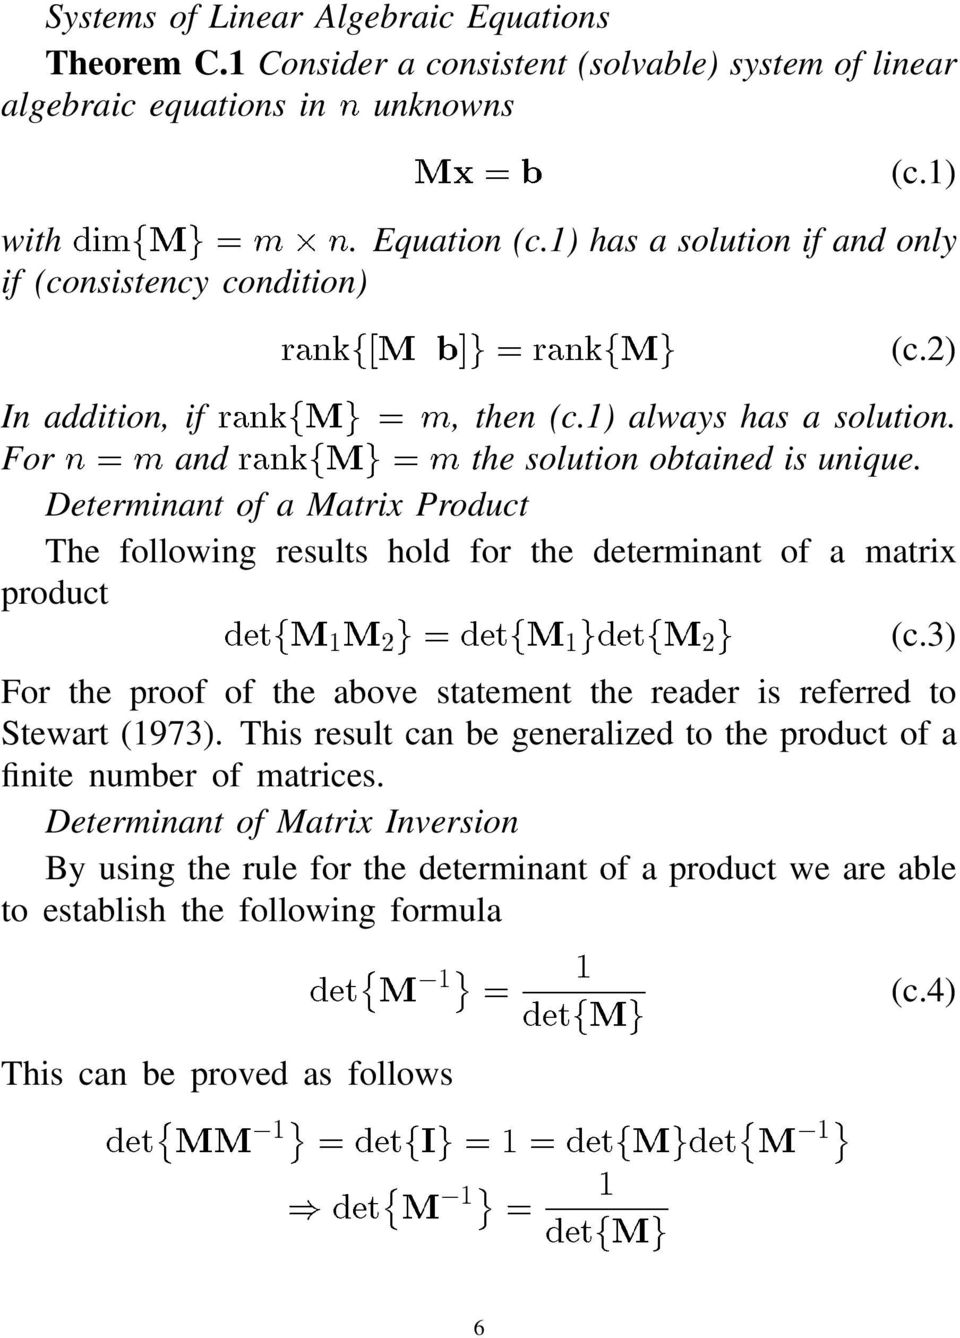 Determinant of a Matrix Product The following results hold for the determinant of a matrix product ; < ; < (c.3) For the proof of the above statement the reader is referred to Stewart (1973).